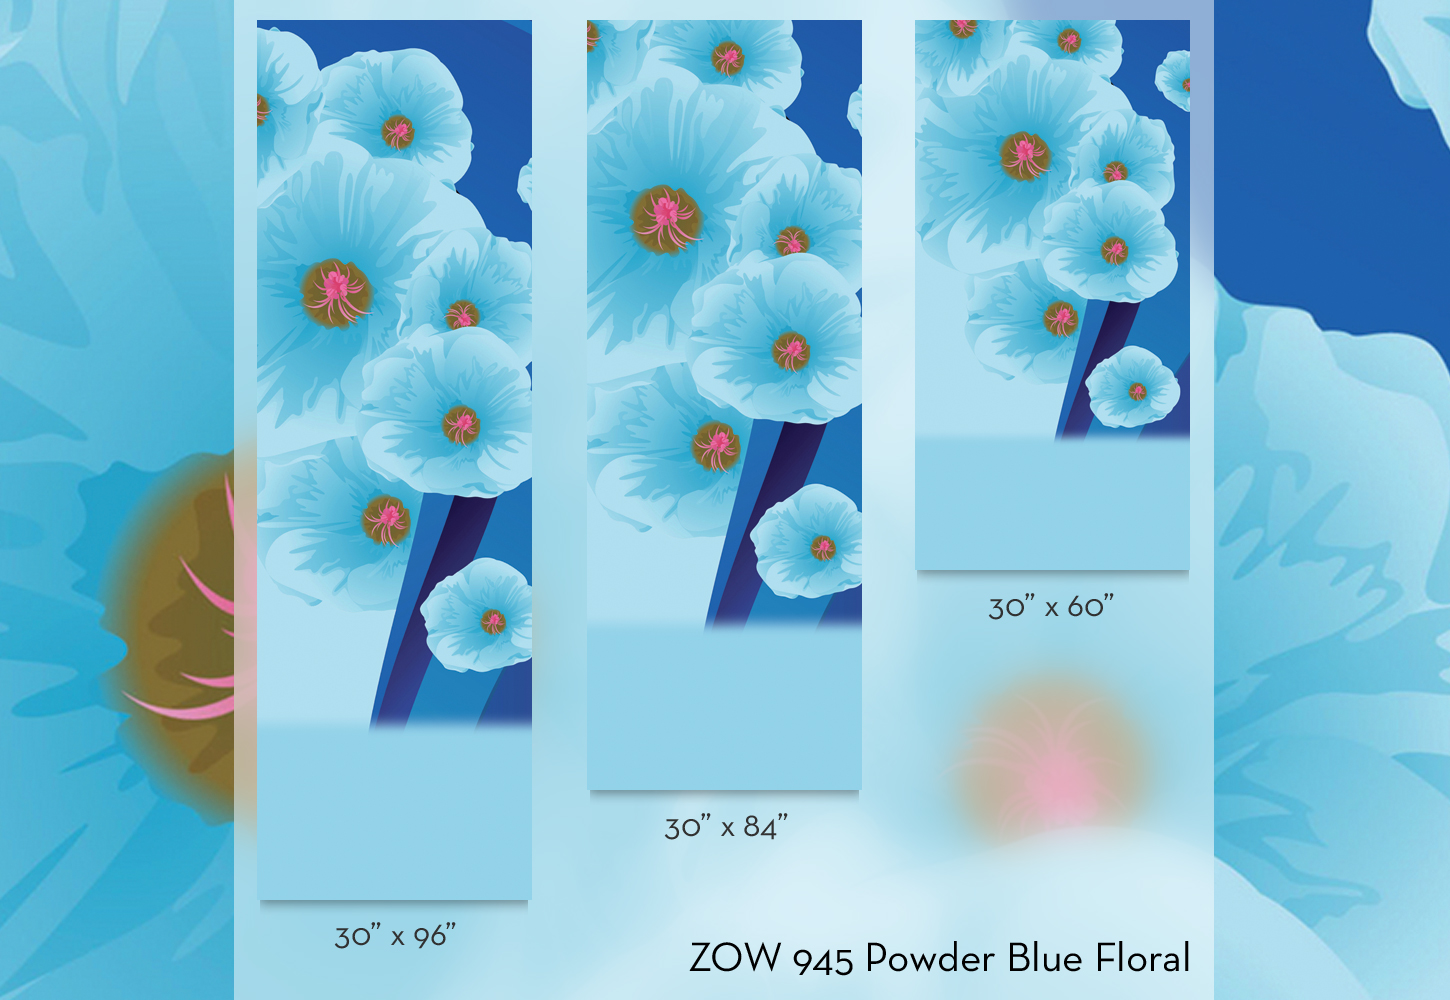 ZOW 945 Powder Blue Floral